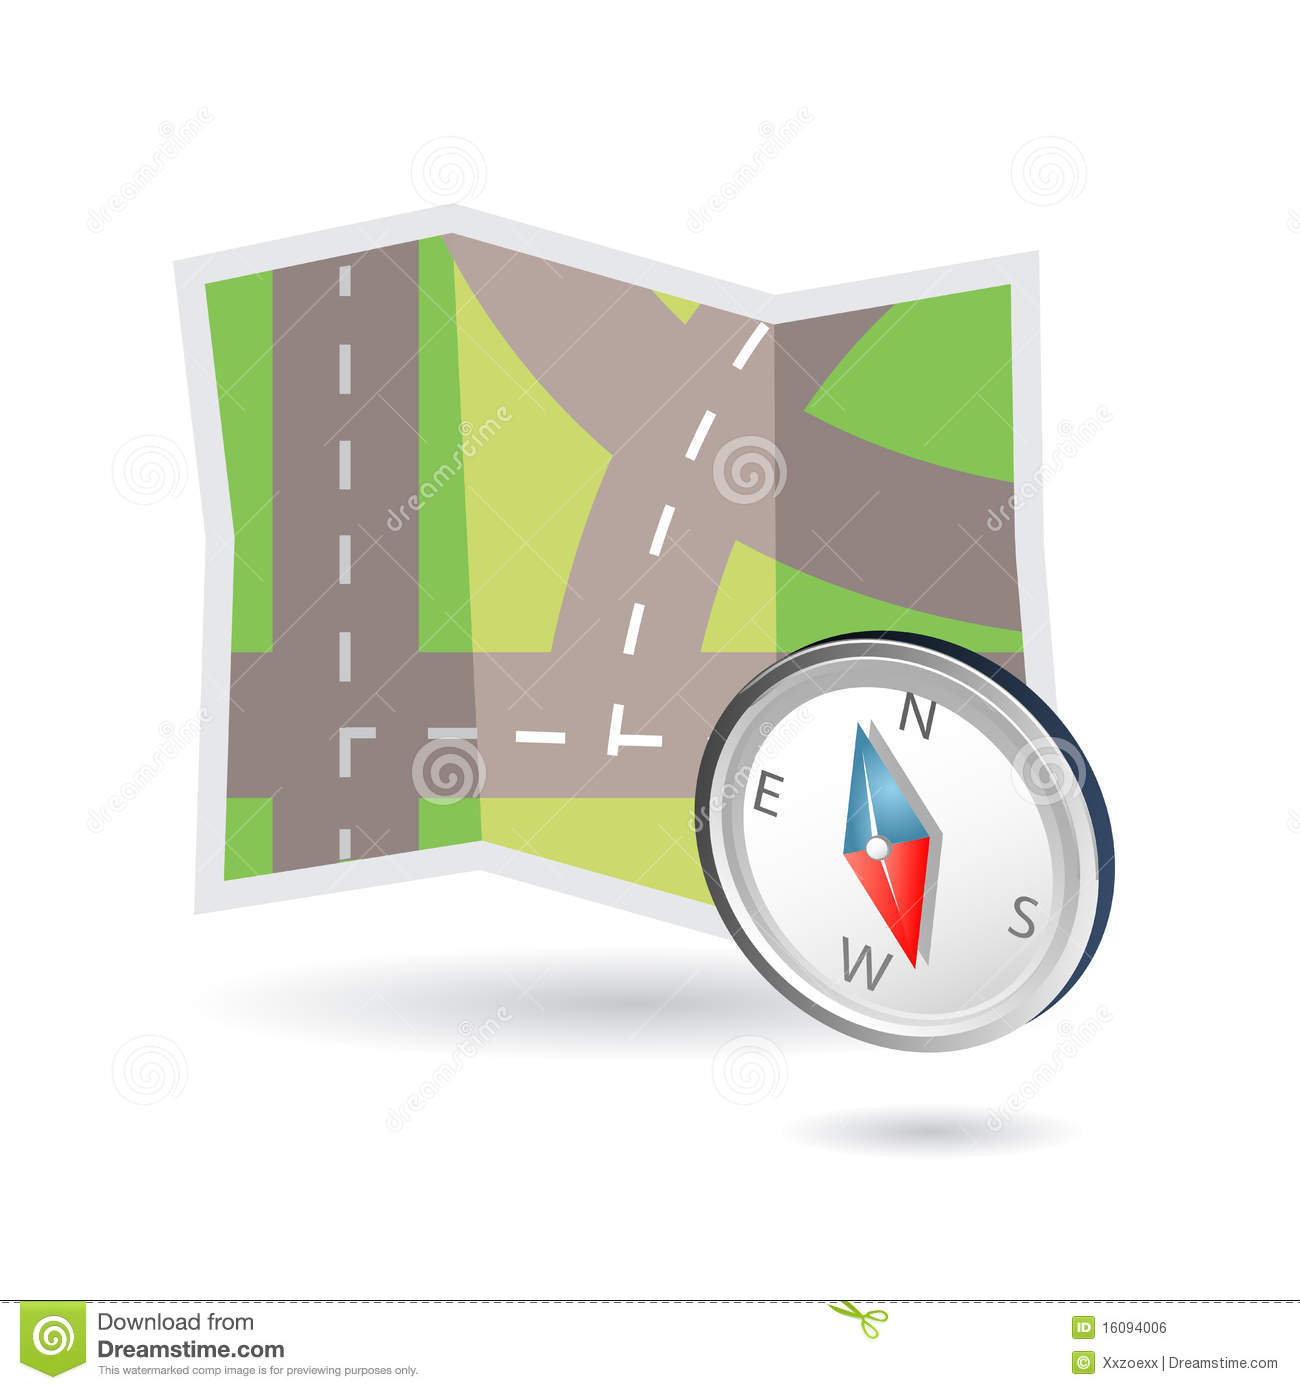 Map and compass icon stock vector  Illustration of drive - 16094006